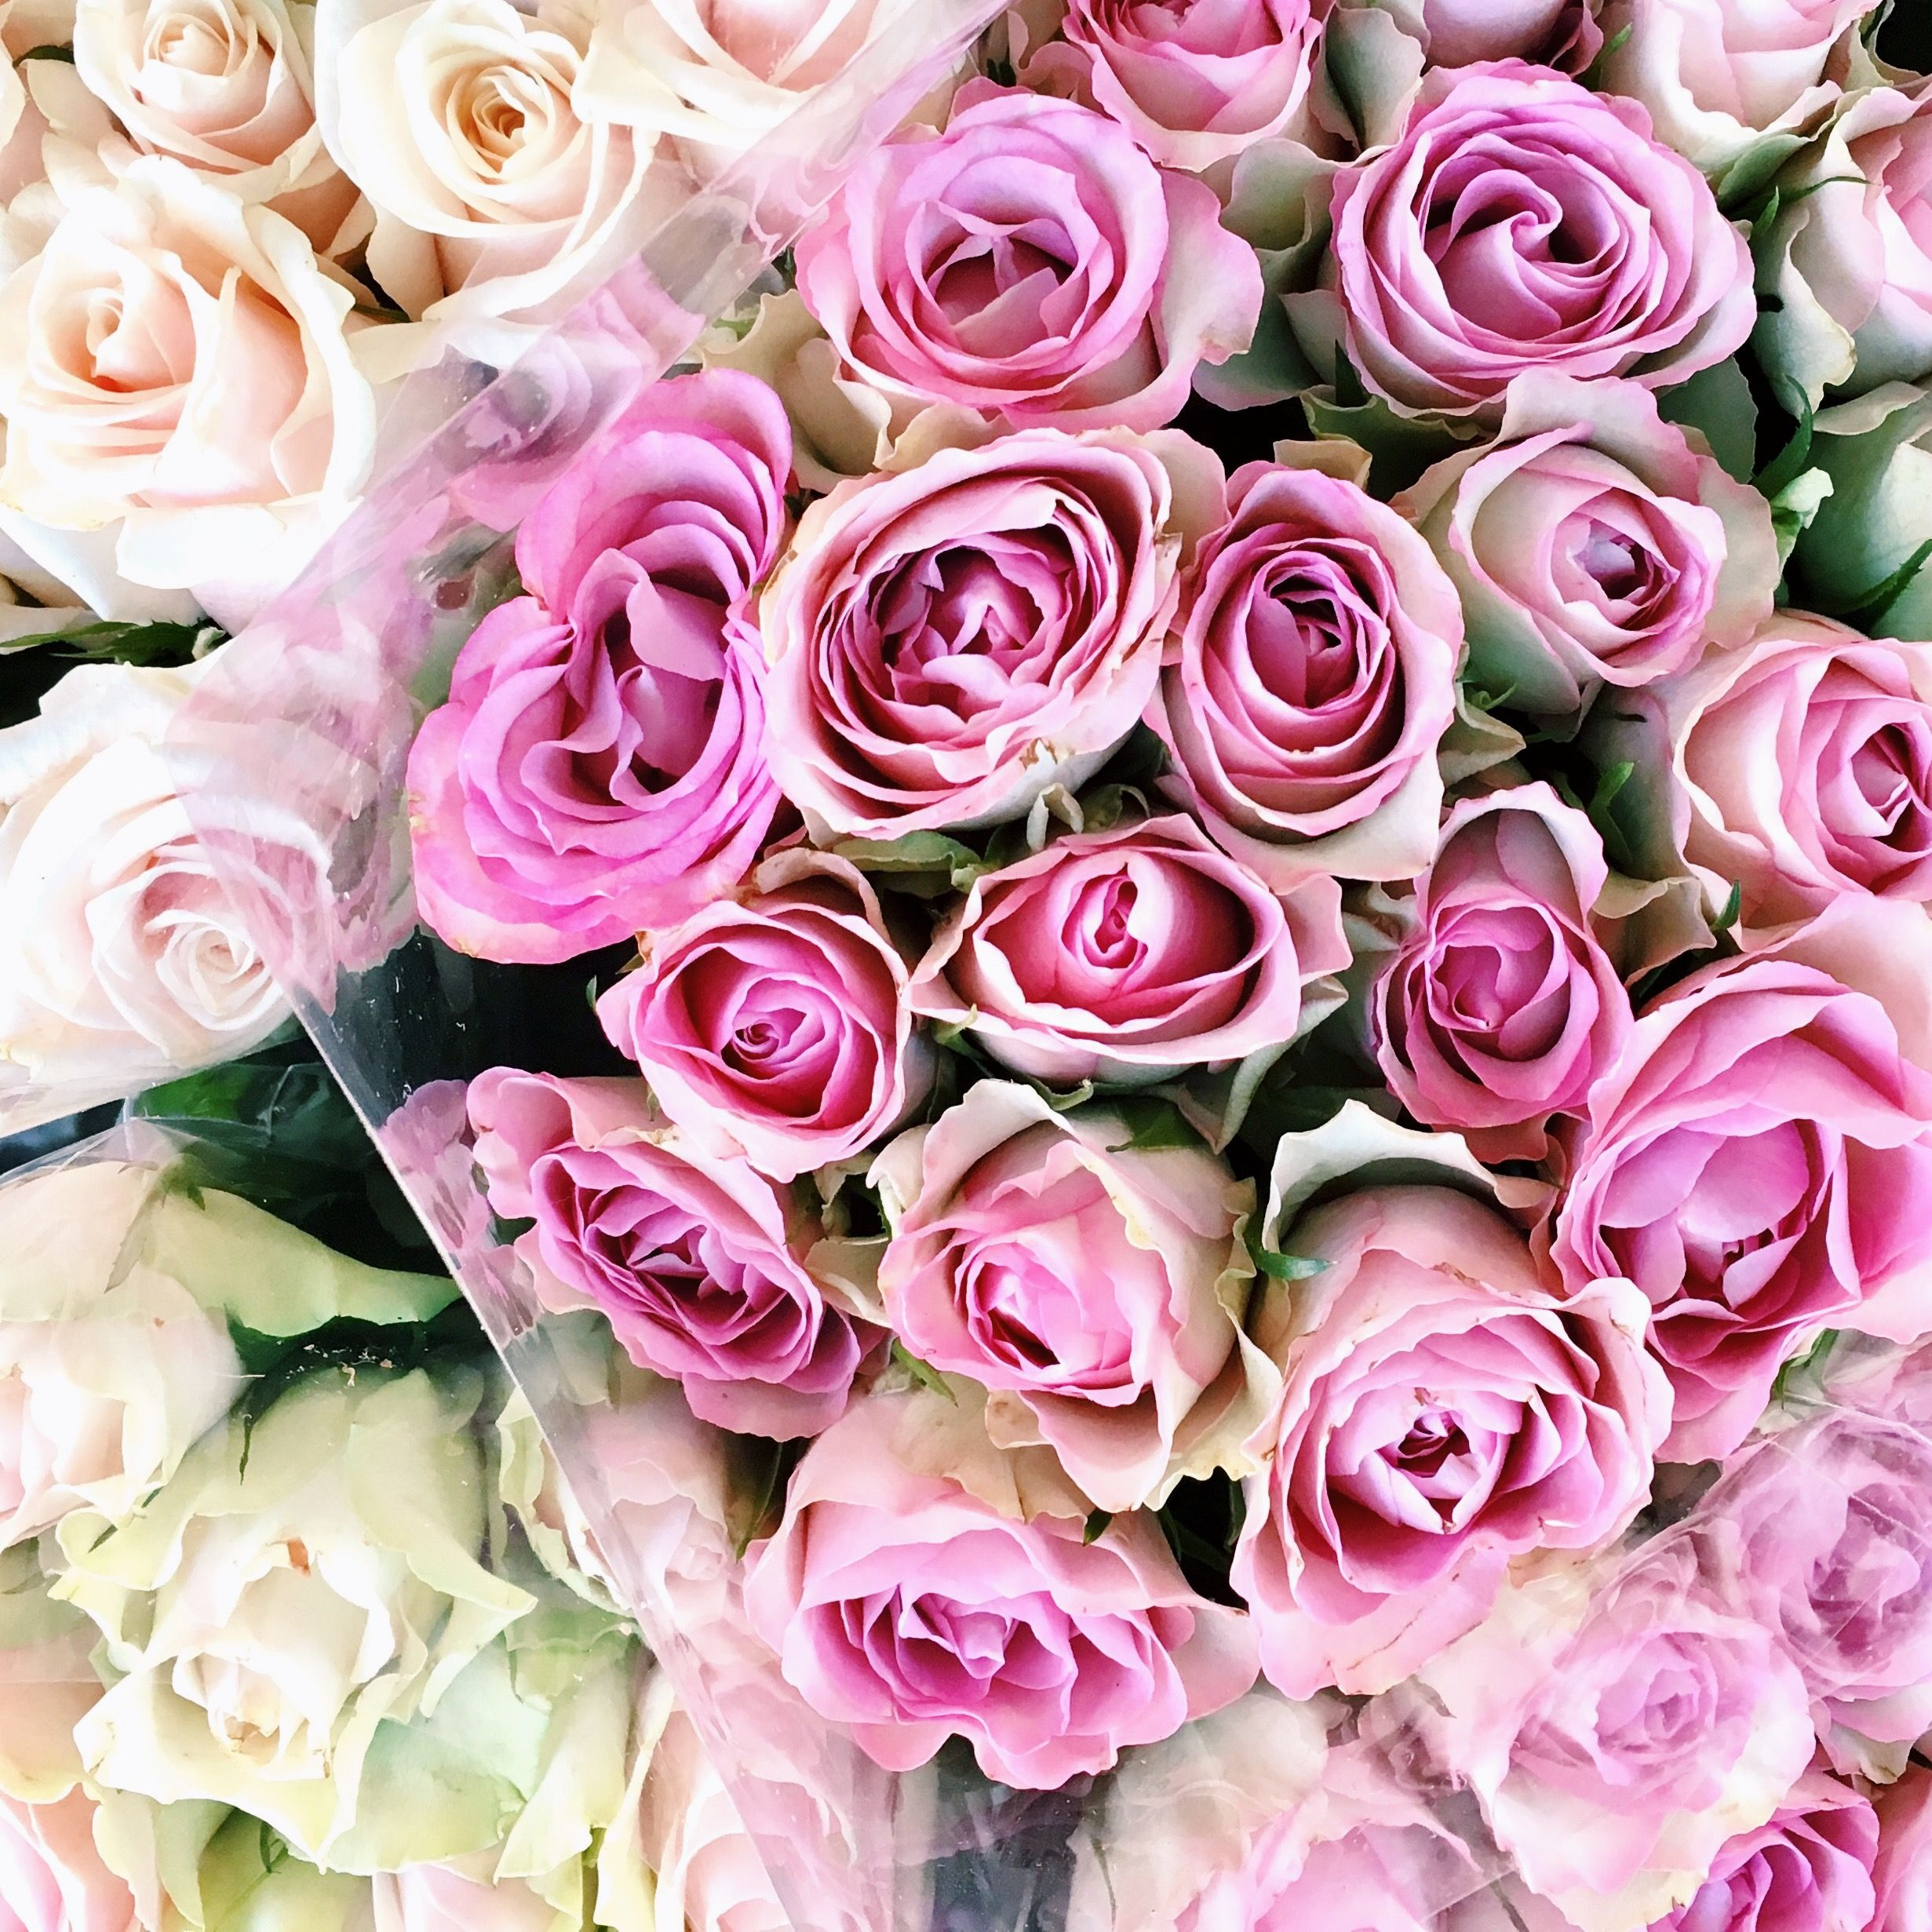 Pin by Matylda Gombrych on Flowers Pinterest Flowers